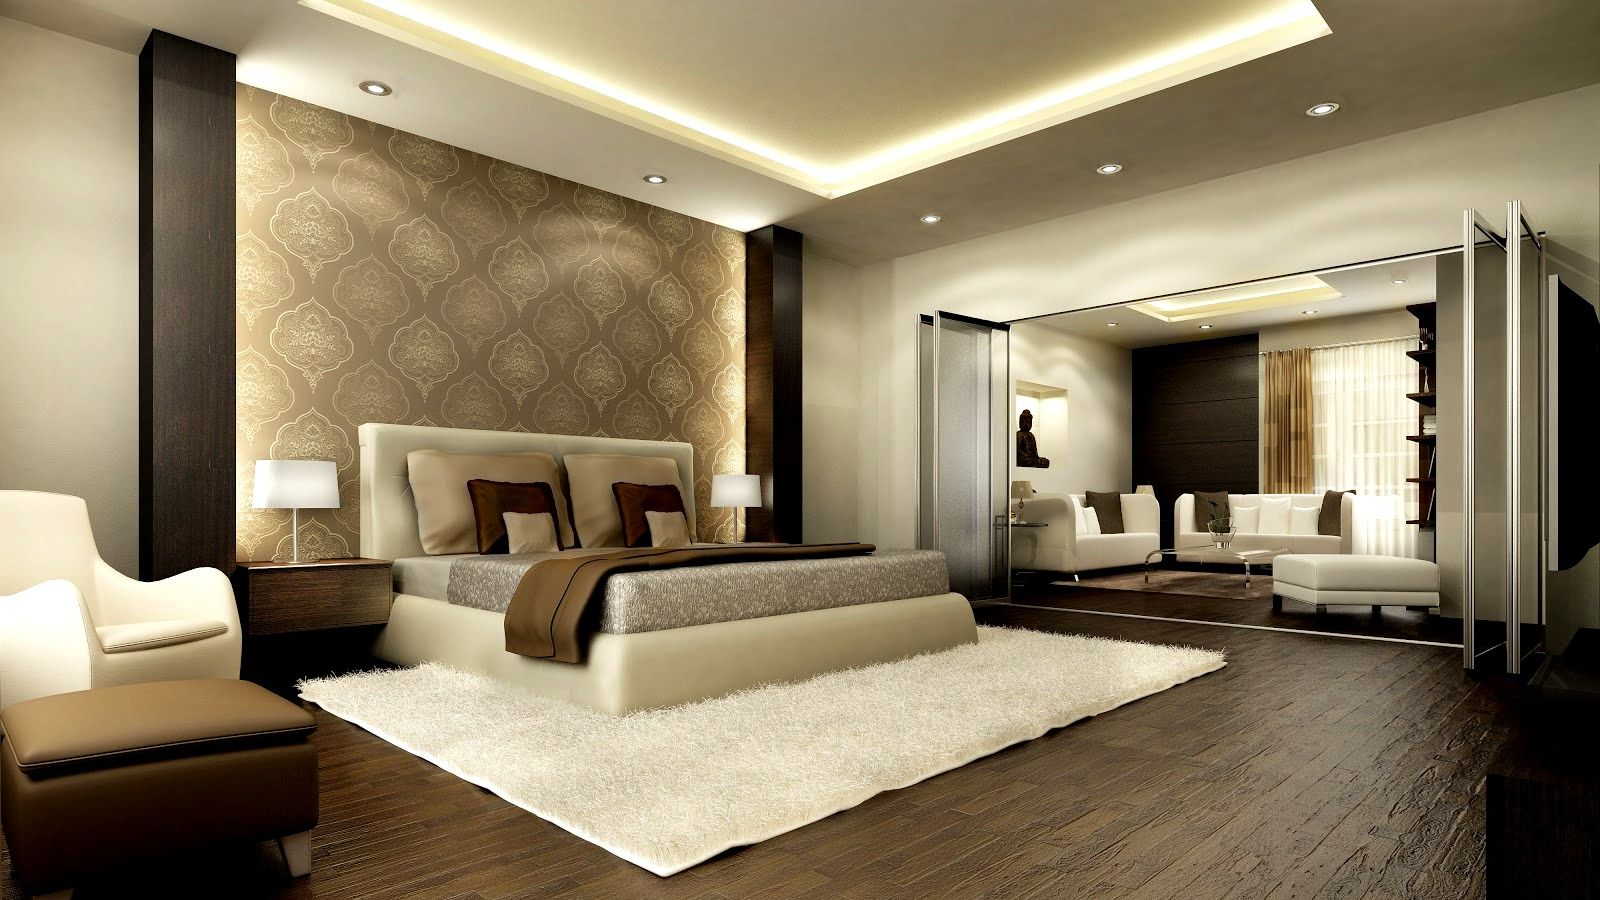 Ideal Bedroom Image - Go to ChineseFurnitureShop.com for even more ...